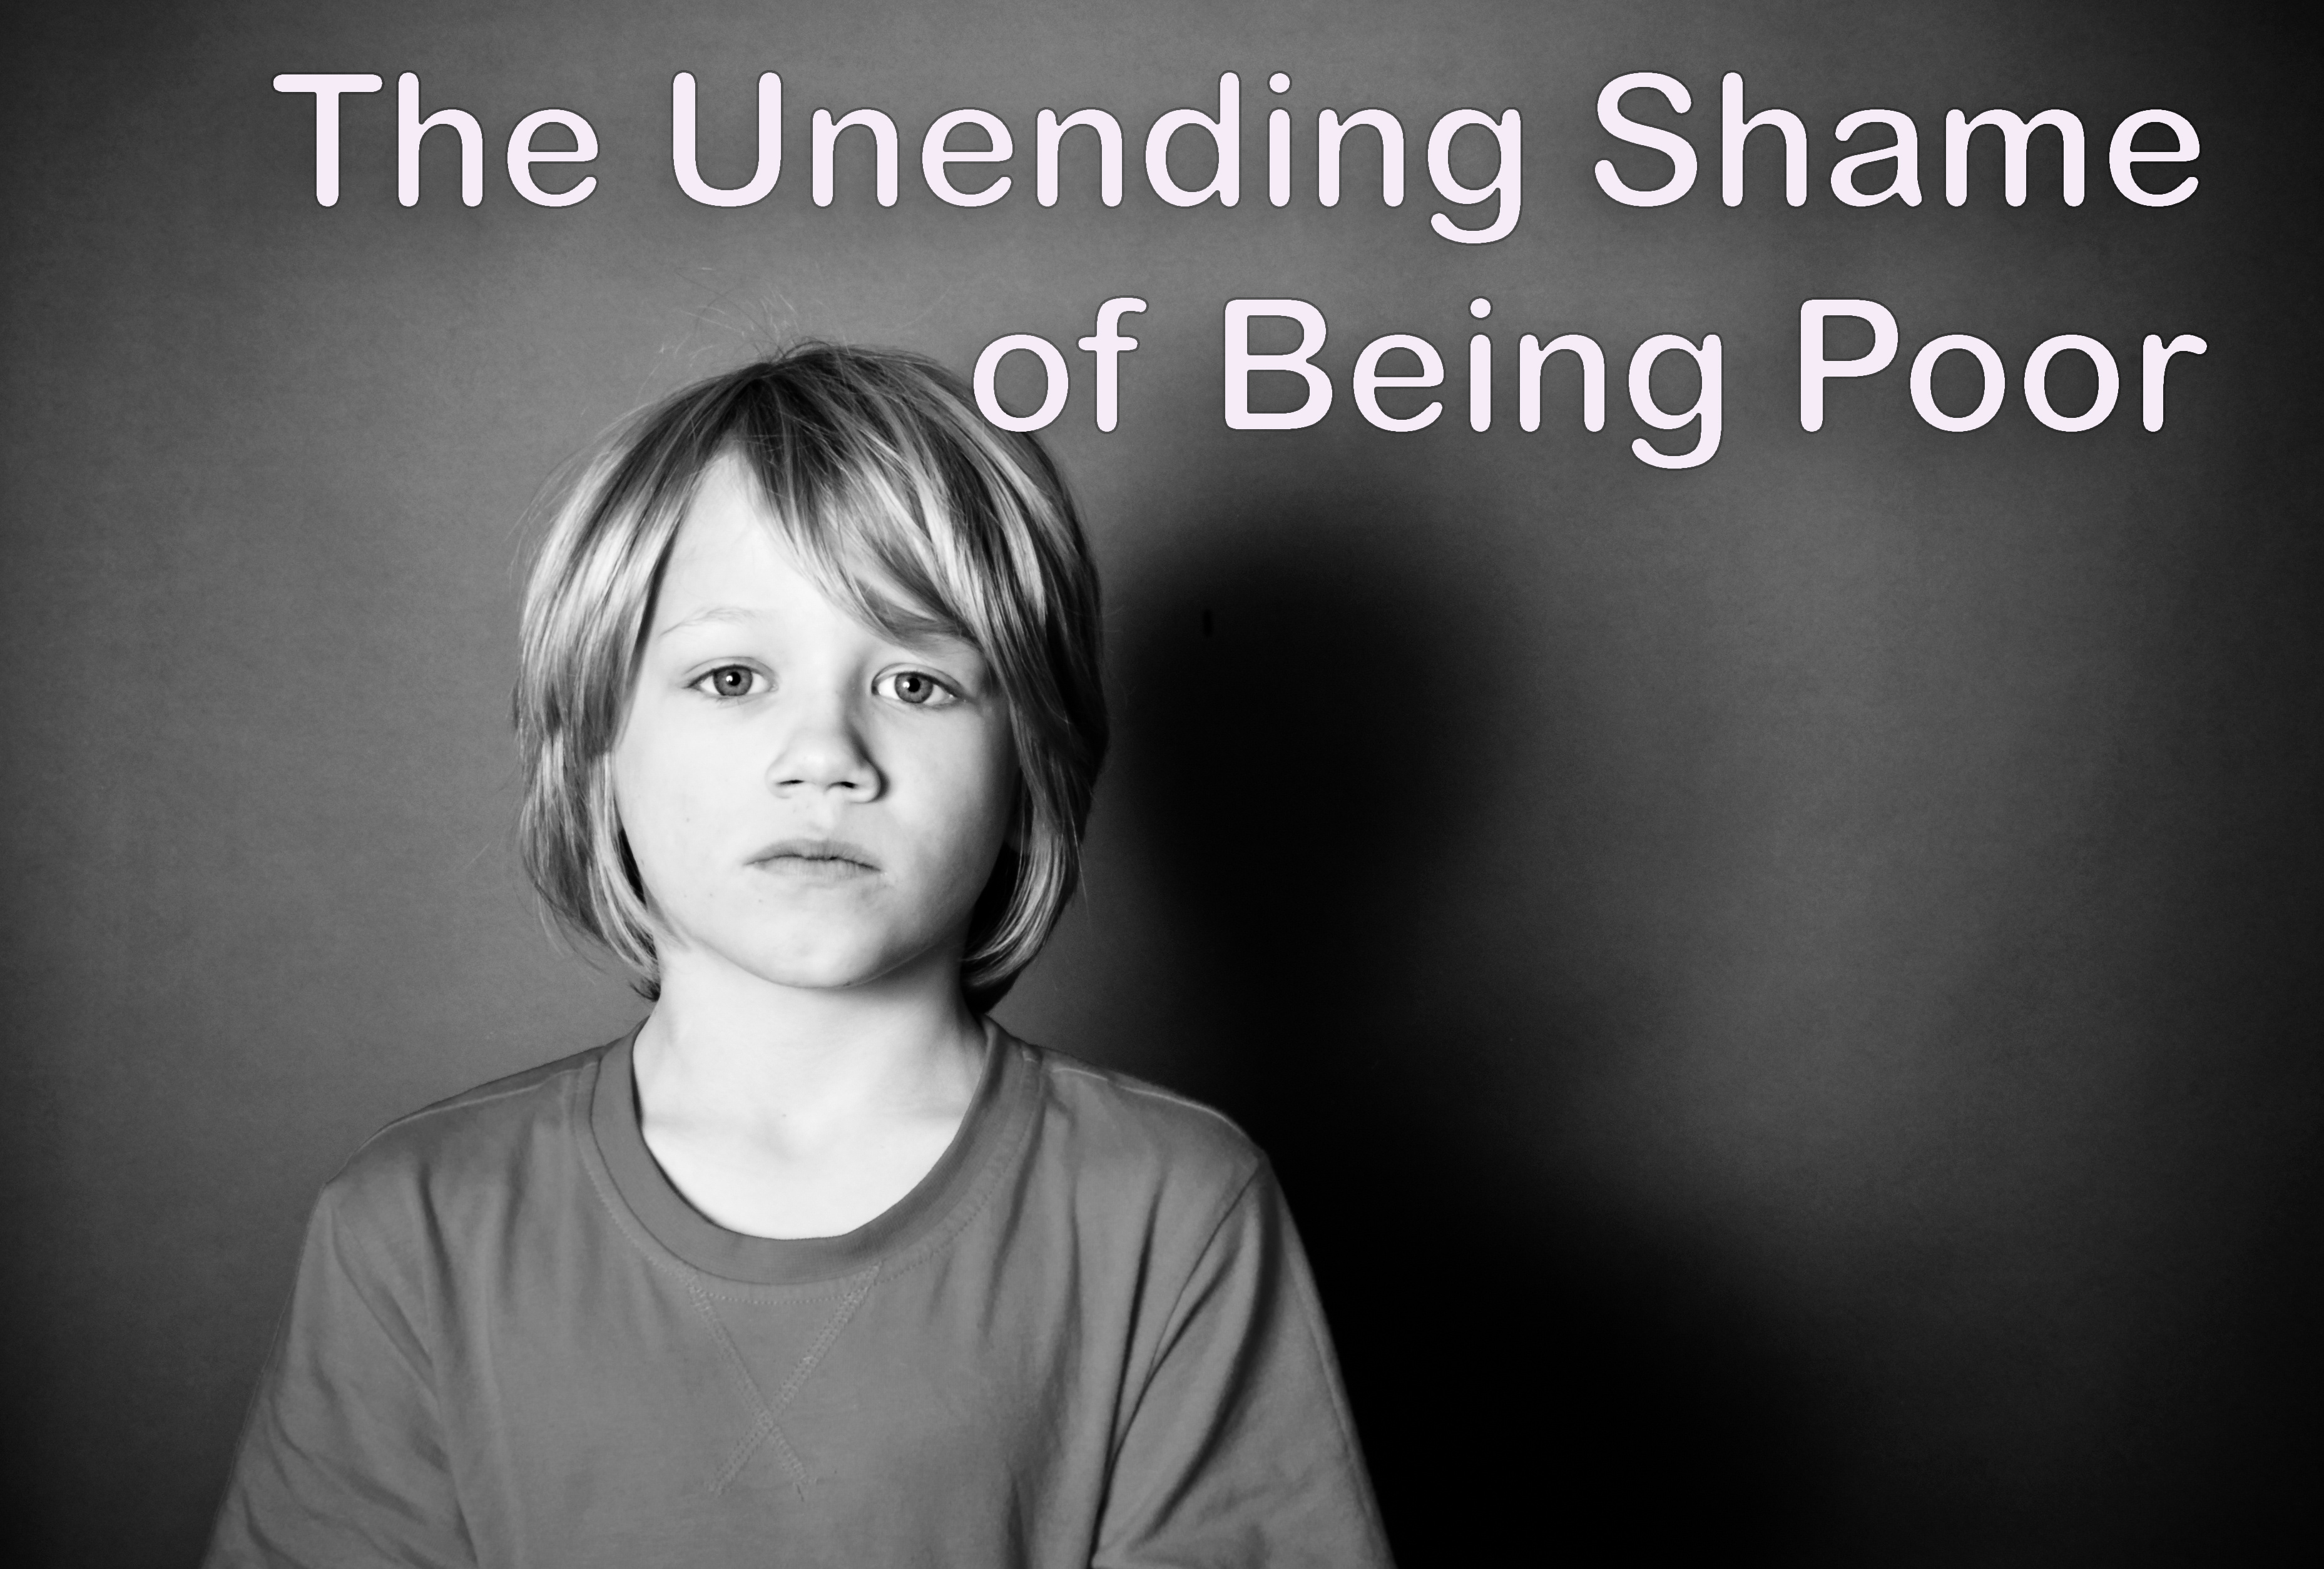 The Unending Shame of Being Poor